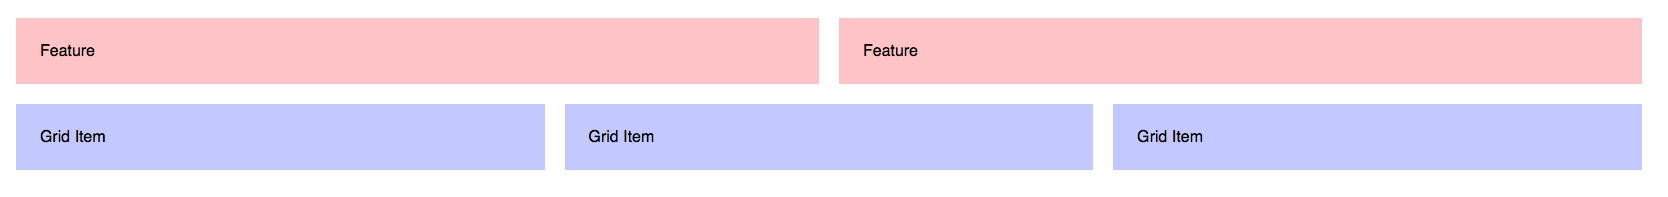 3-column Feature Grid with Flexbox